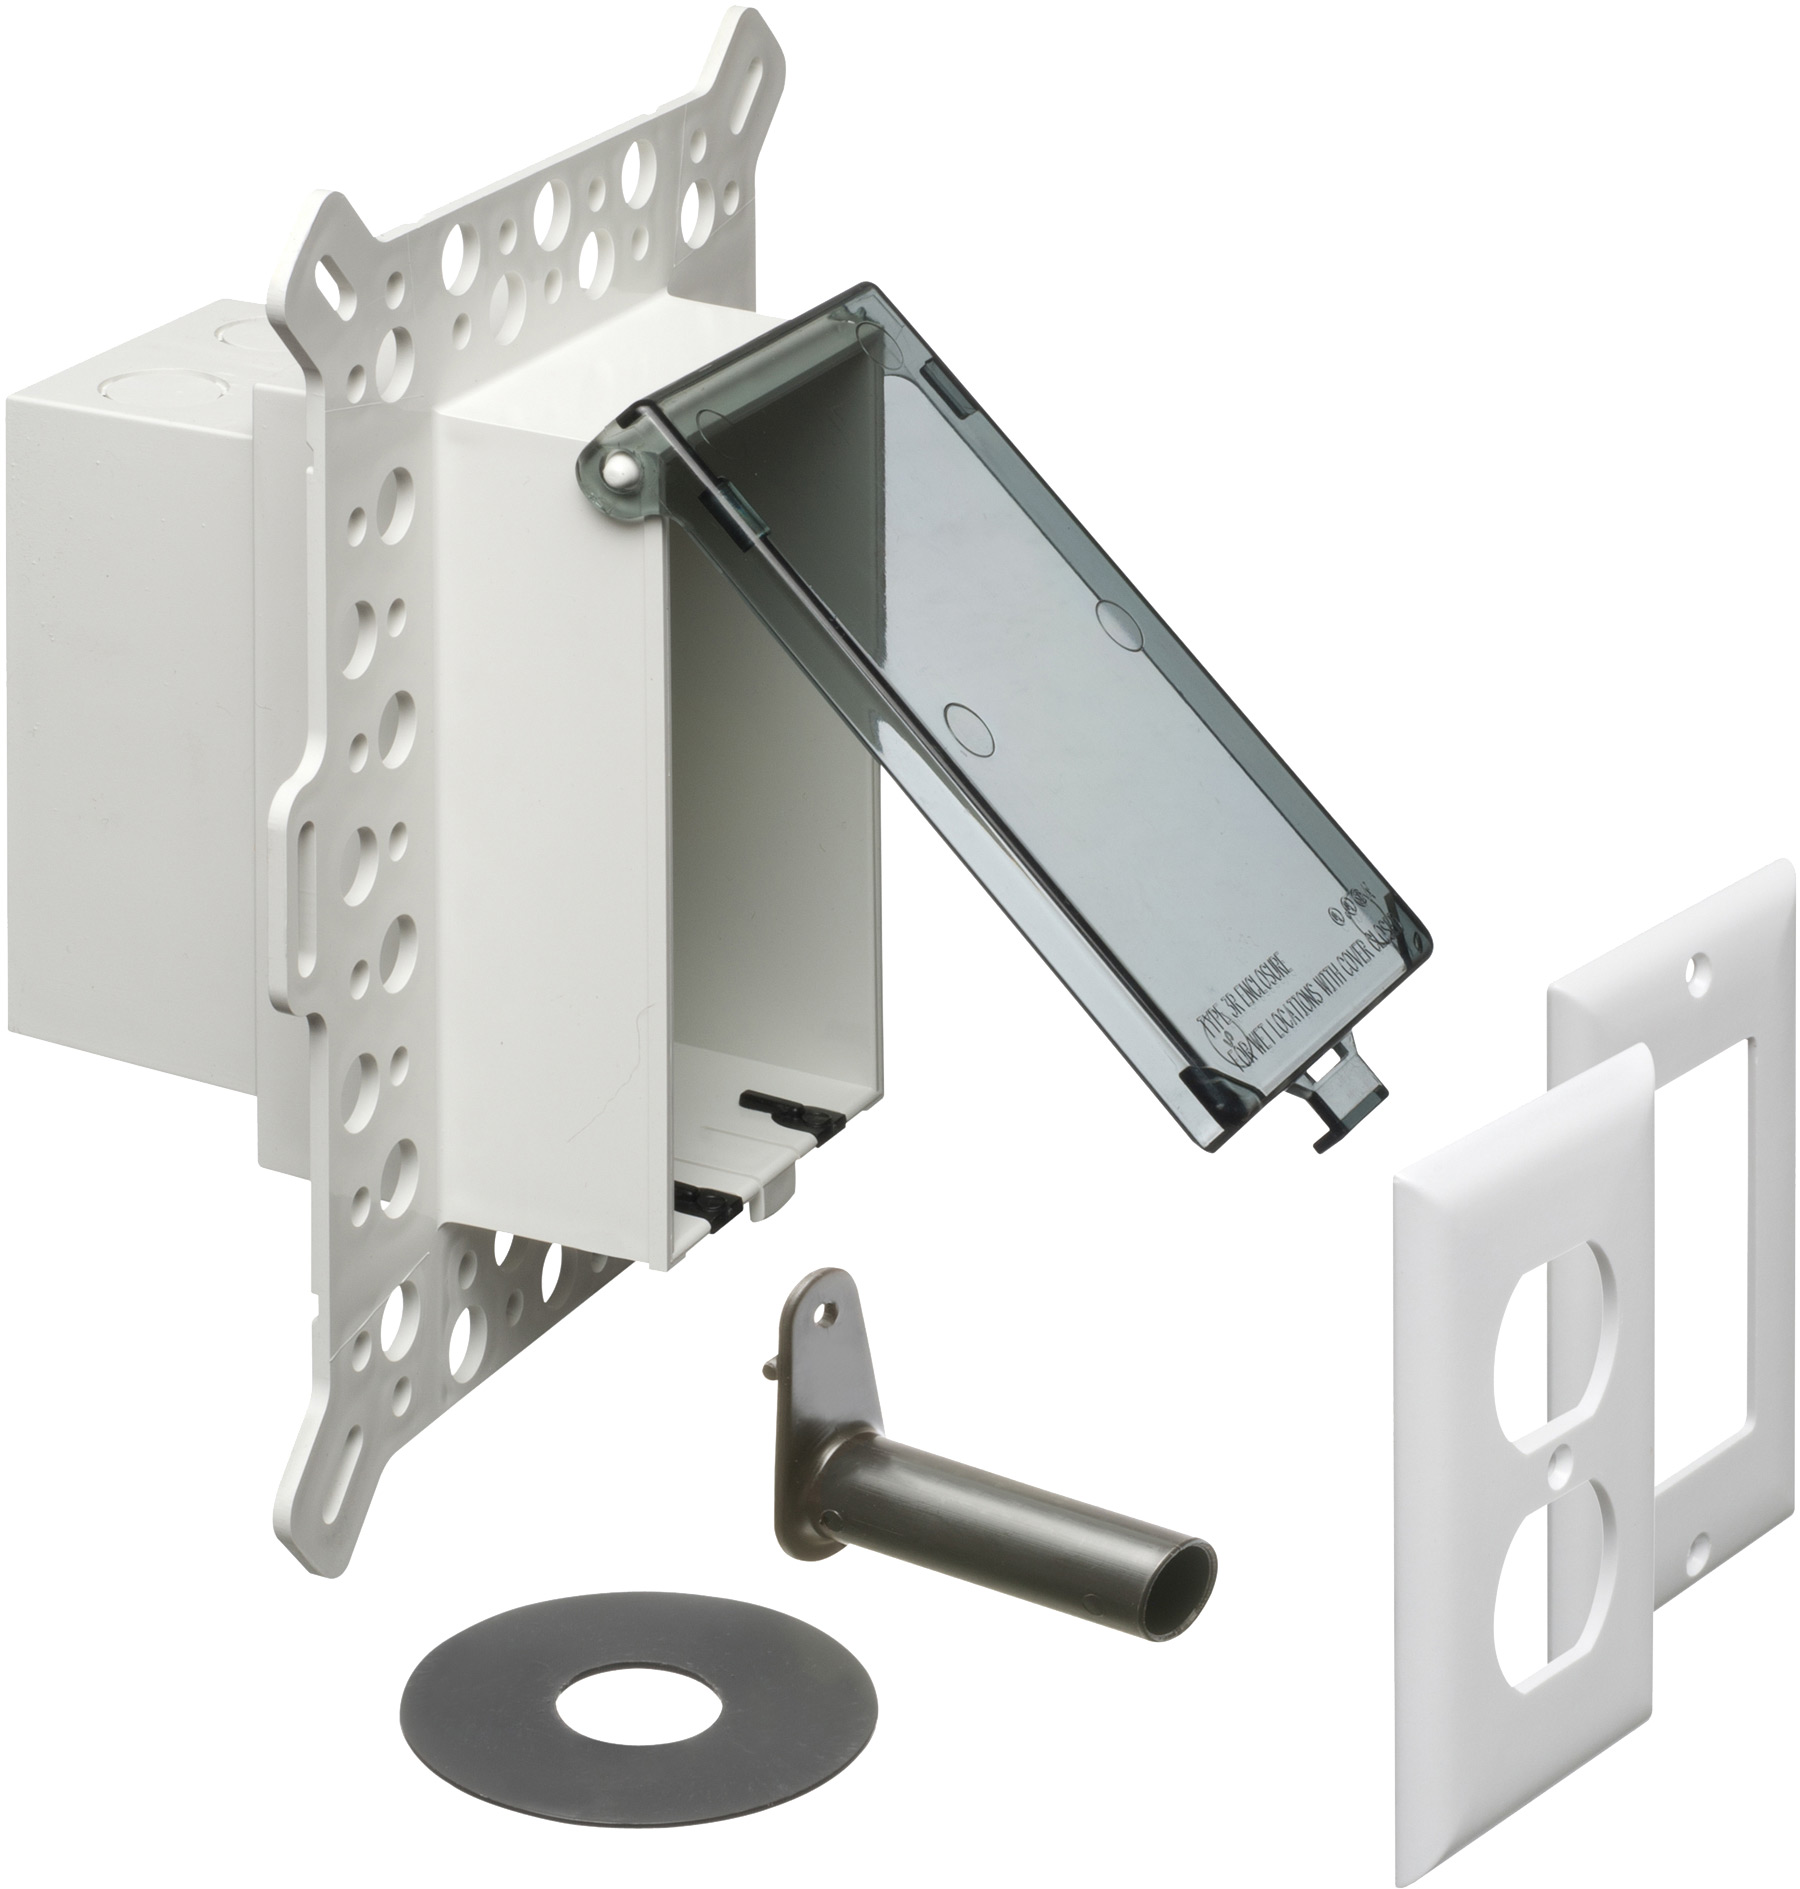 ARL DBVM1C 7.01 X 5.16 X 9.06IN UV RATED PLASTIC LOW PROFILE BOX Electrical Box with Weatherproof Cover for Textured Surfaces/Rigid Siding/Stucco, New-Construction, Clear, Vertical/1-Gang